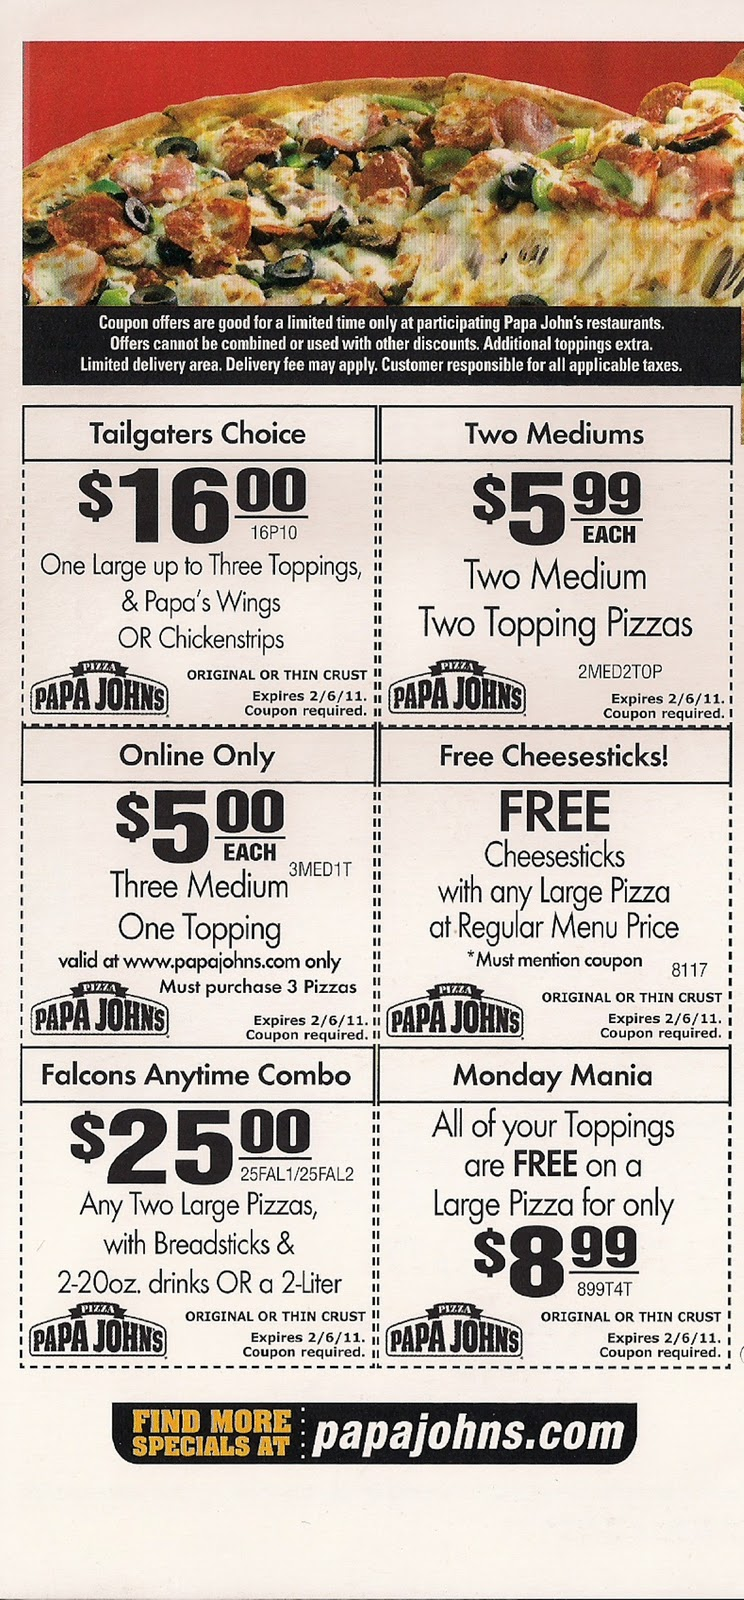 North Carolina Only-NC Panthers Special! Get Two Large 2-Topping Pizzas For $ Each. Online only. Offer good for a limited time at participating Papa Johns restaurants. Additional toppings extra. Not valid with any other coupons or discounts. Limited delivery area. Delivery fee may apply. Customer responsible for all applicable taxes.